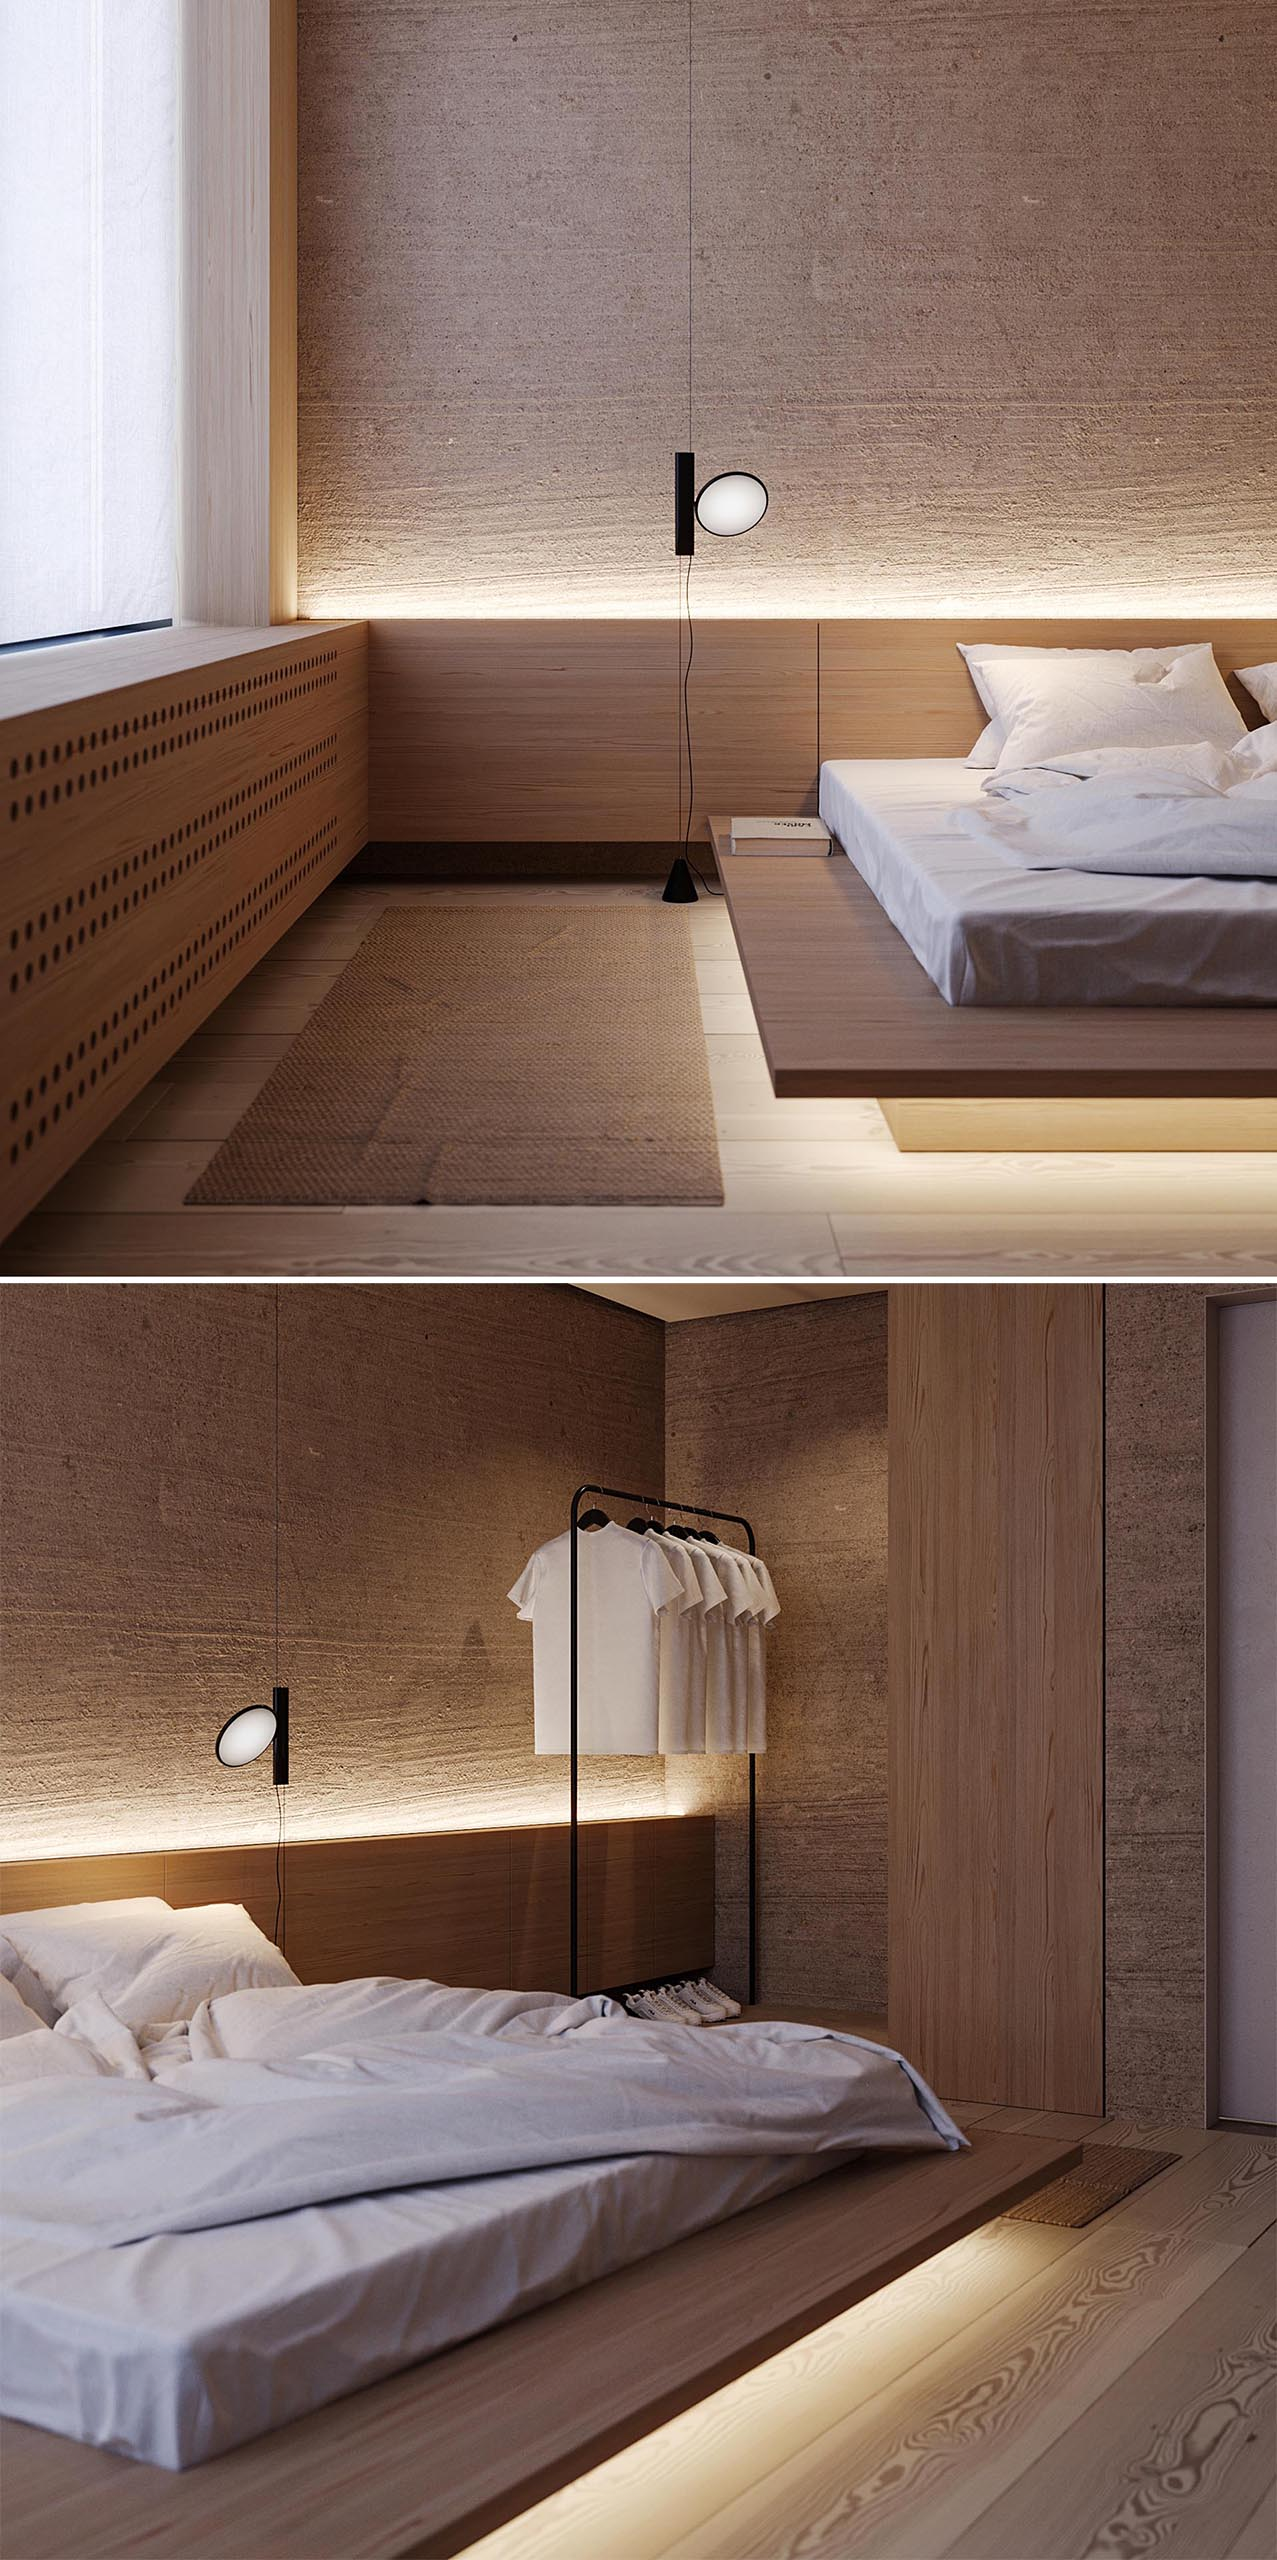 A modern bedroom that uses wood furniture and LED lighting to create a warm and calming environment.